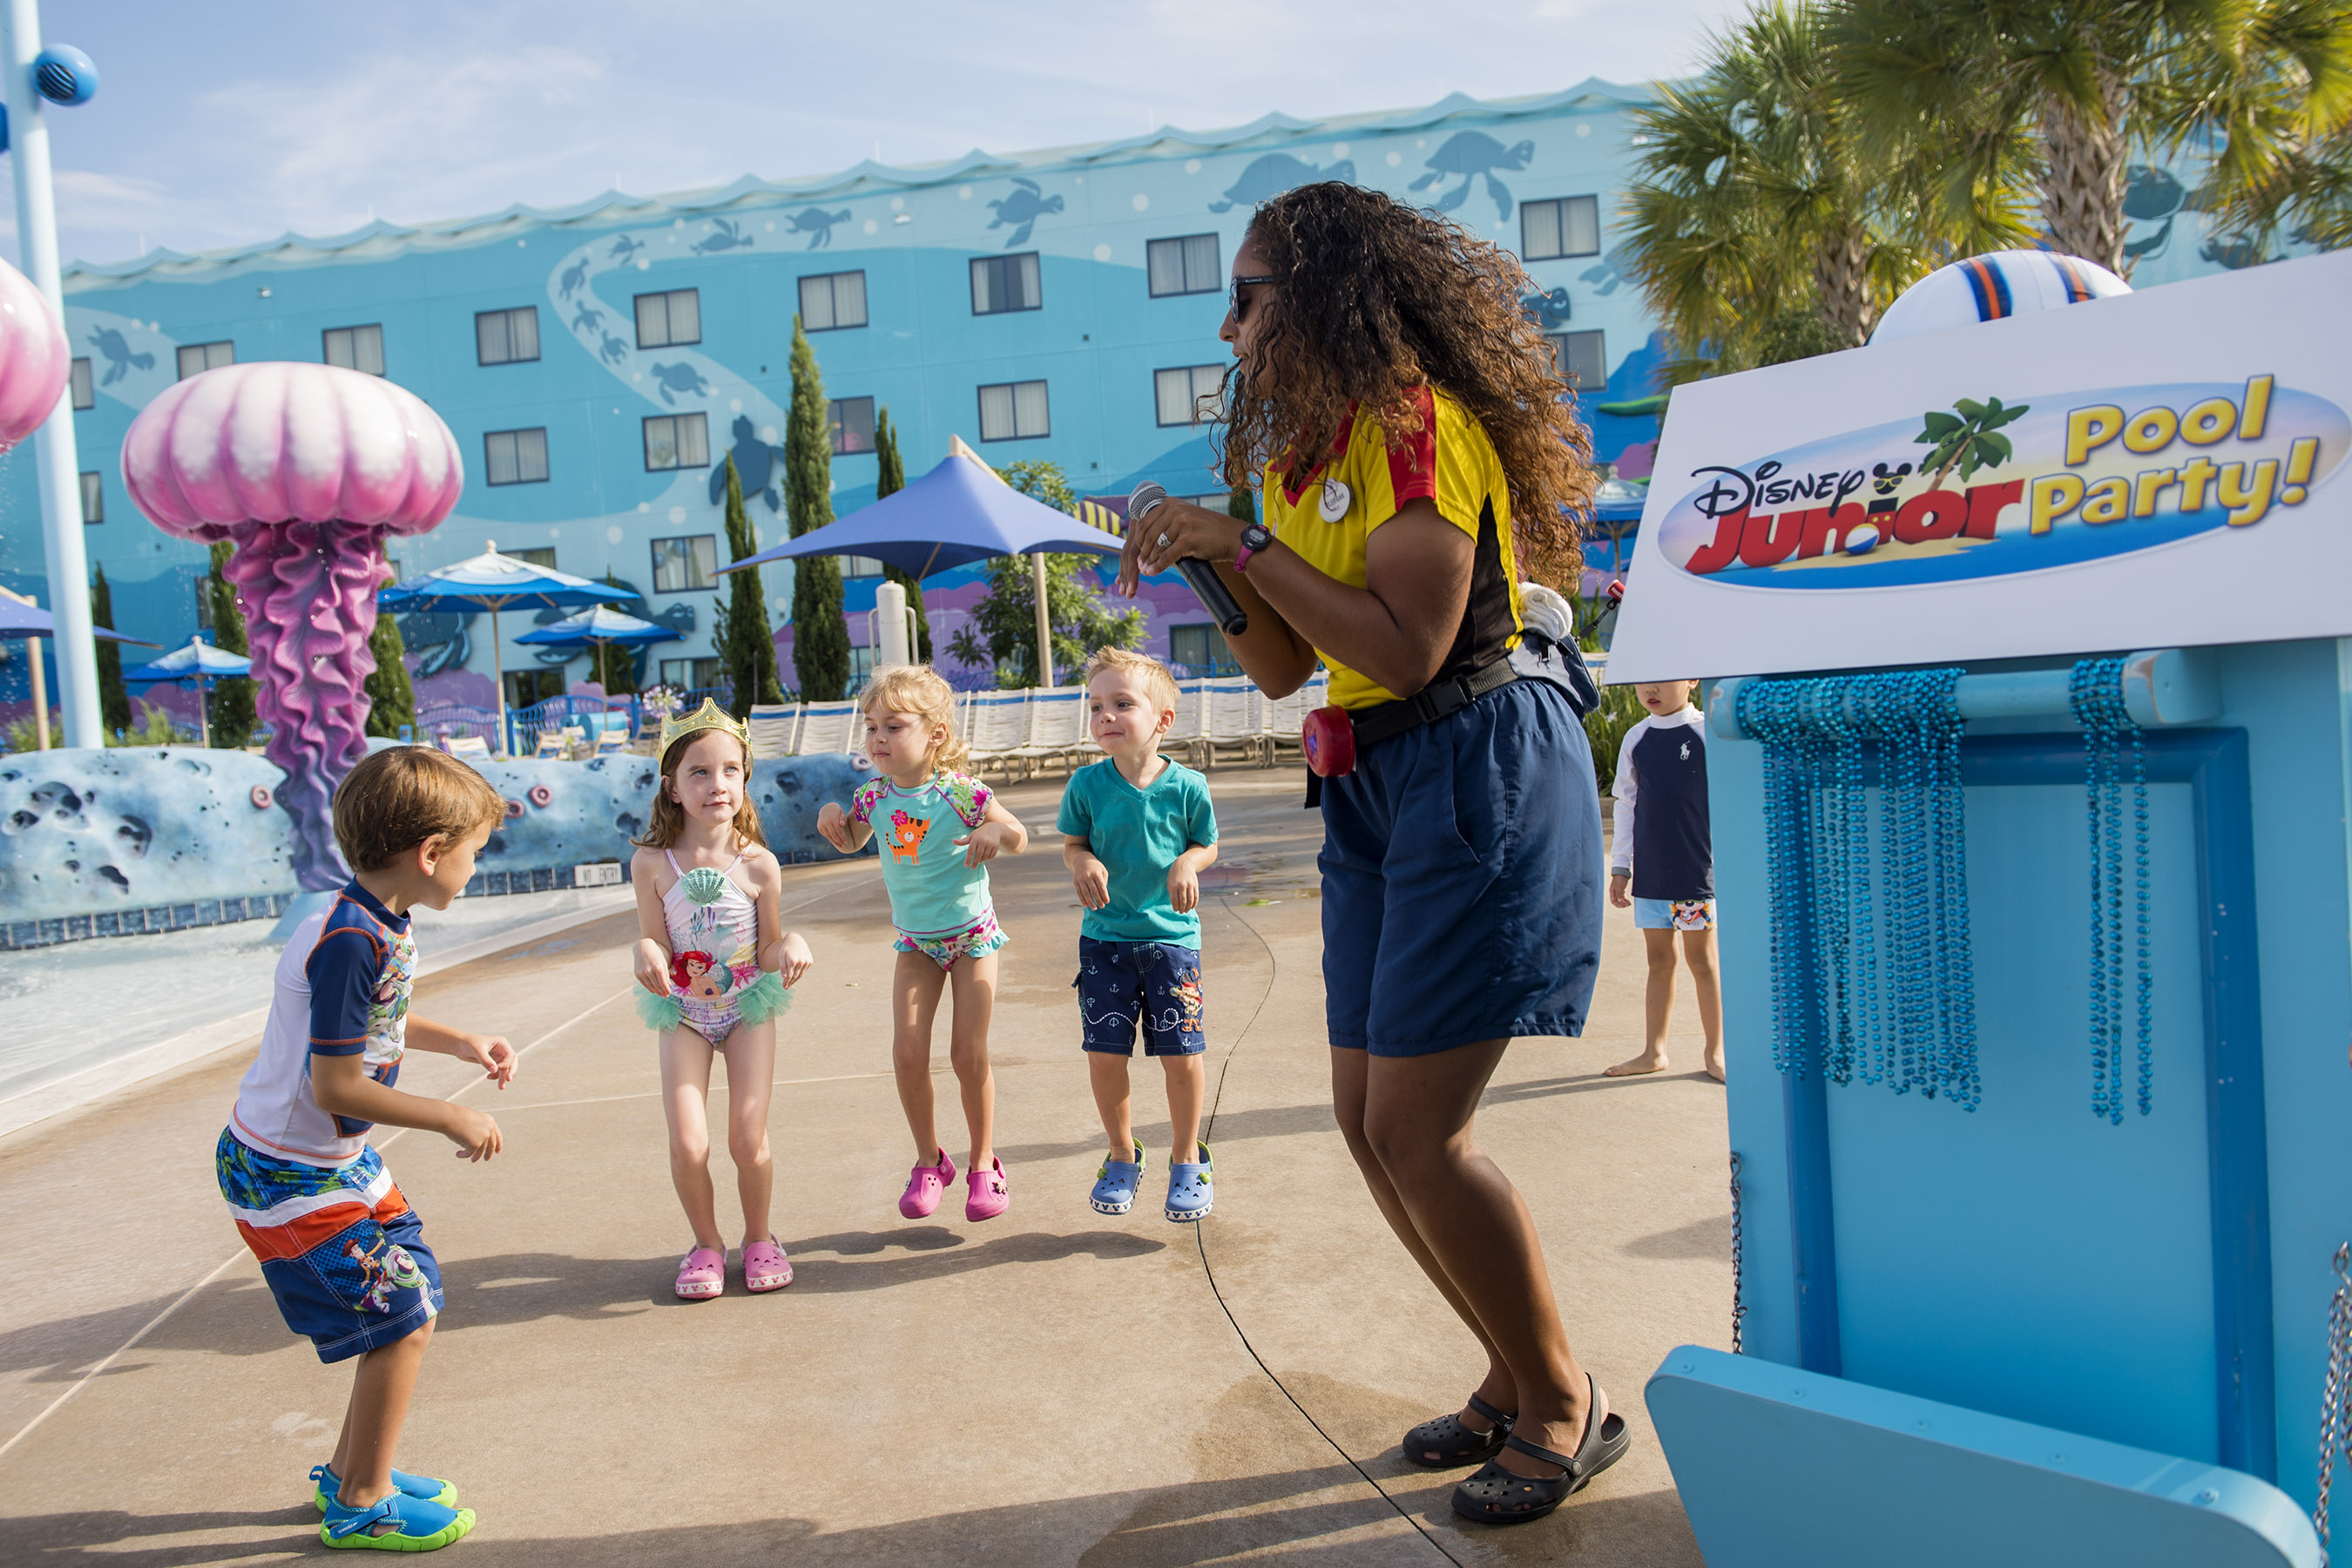 Several hotels at Walt Disney World offer Disney Pool Parties to their younger guests.